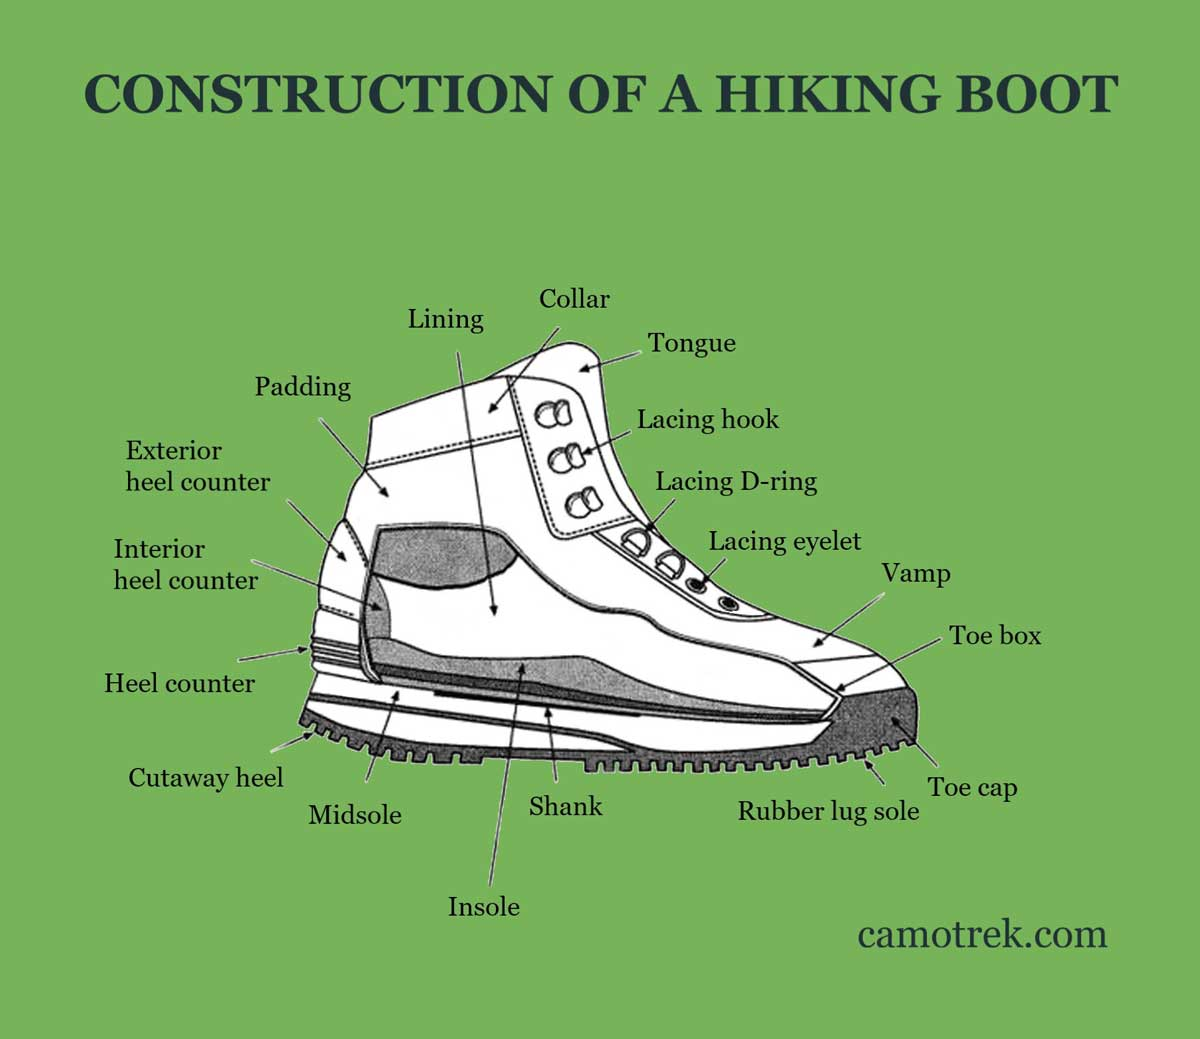 Parts of a Hiking Boot Diagram